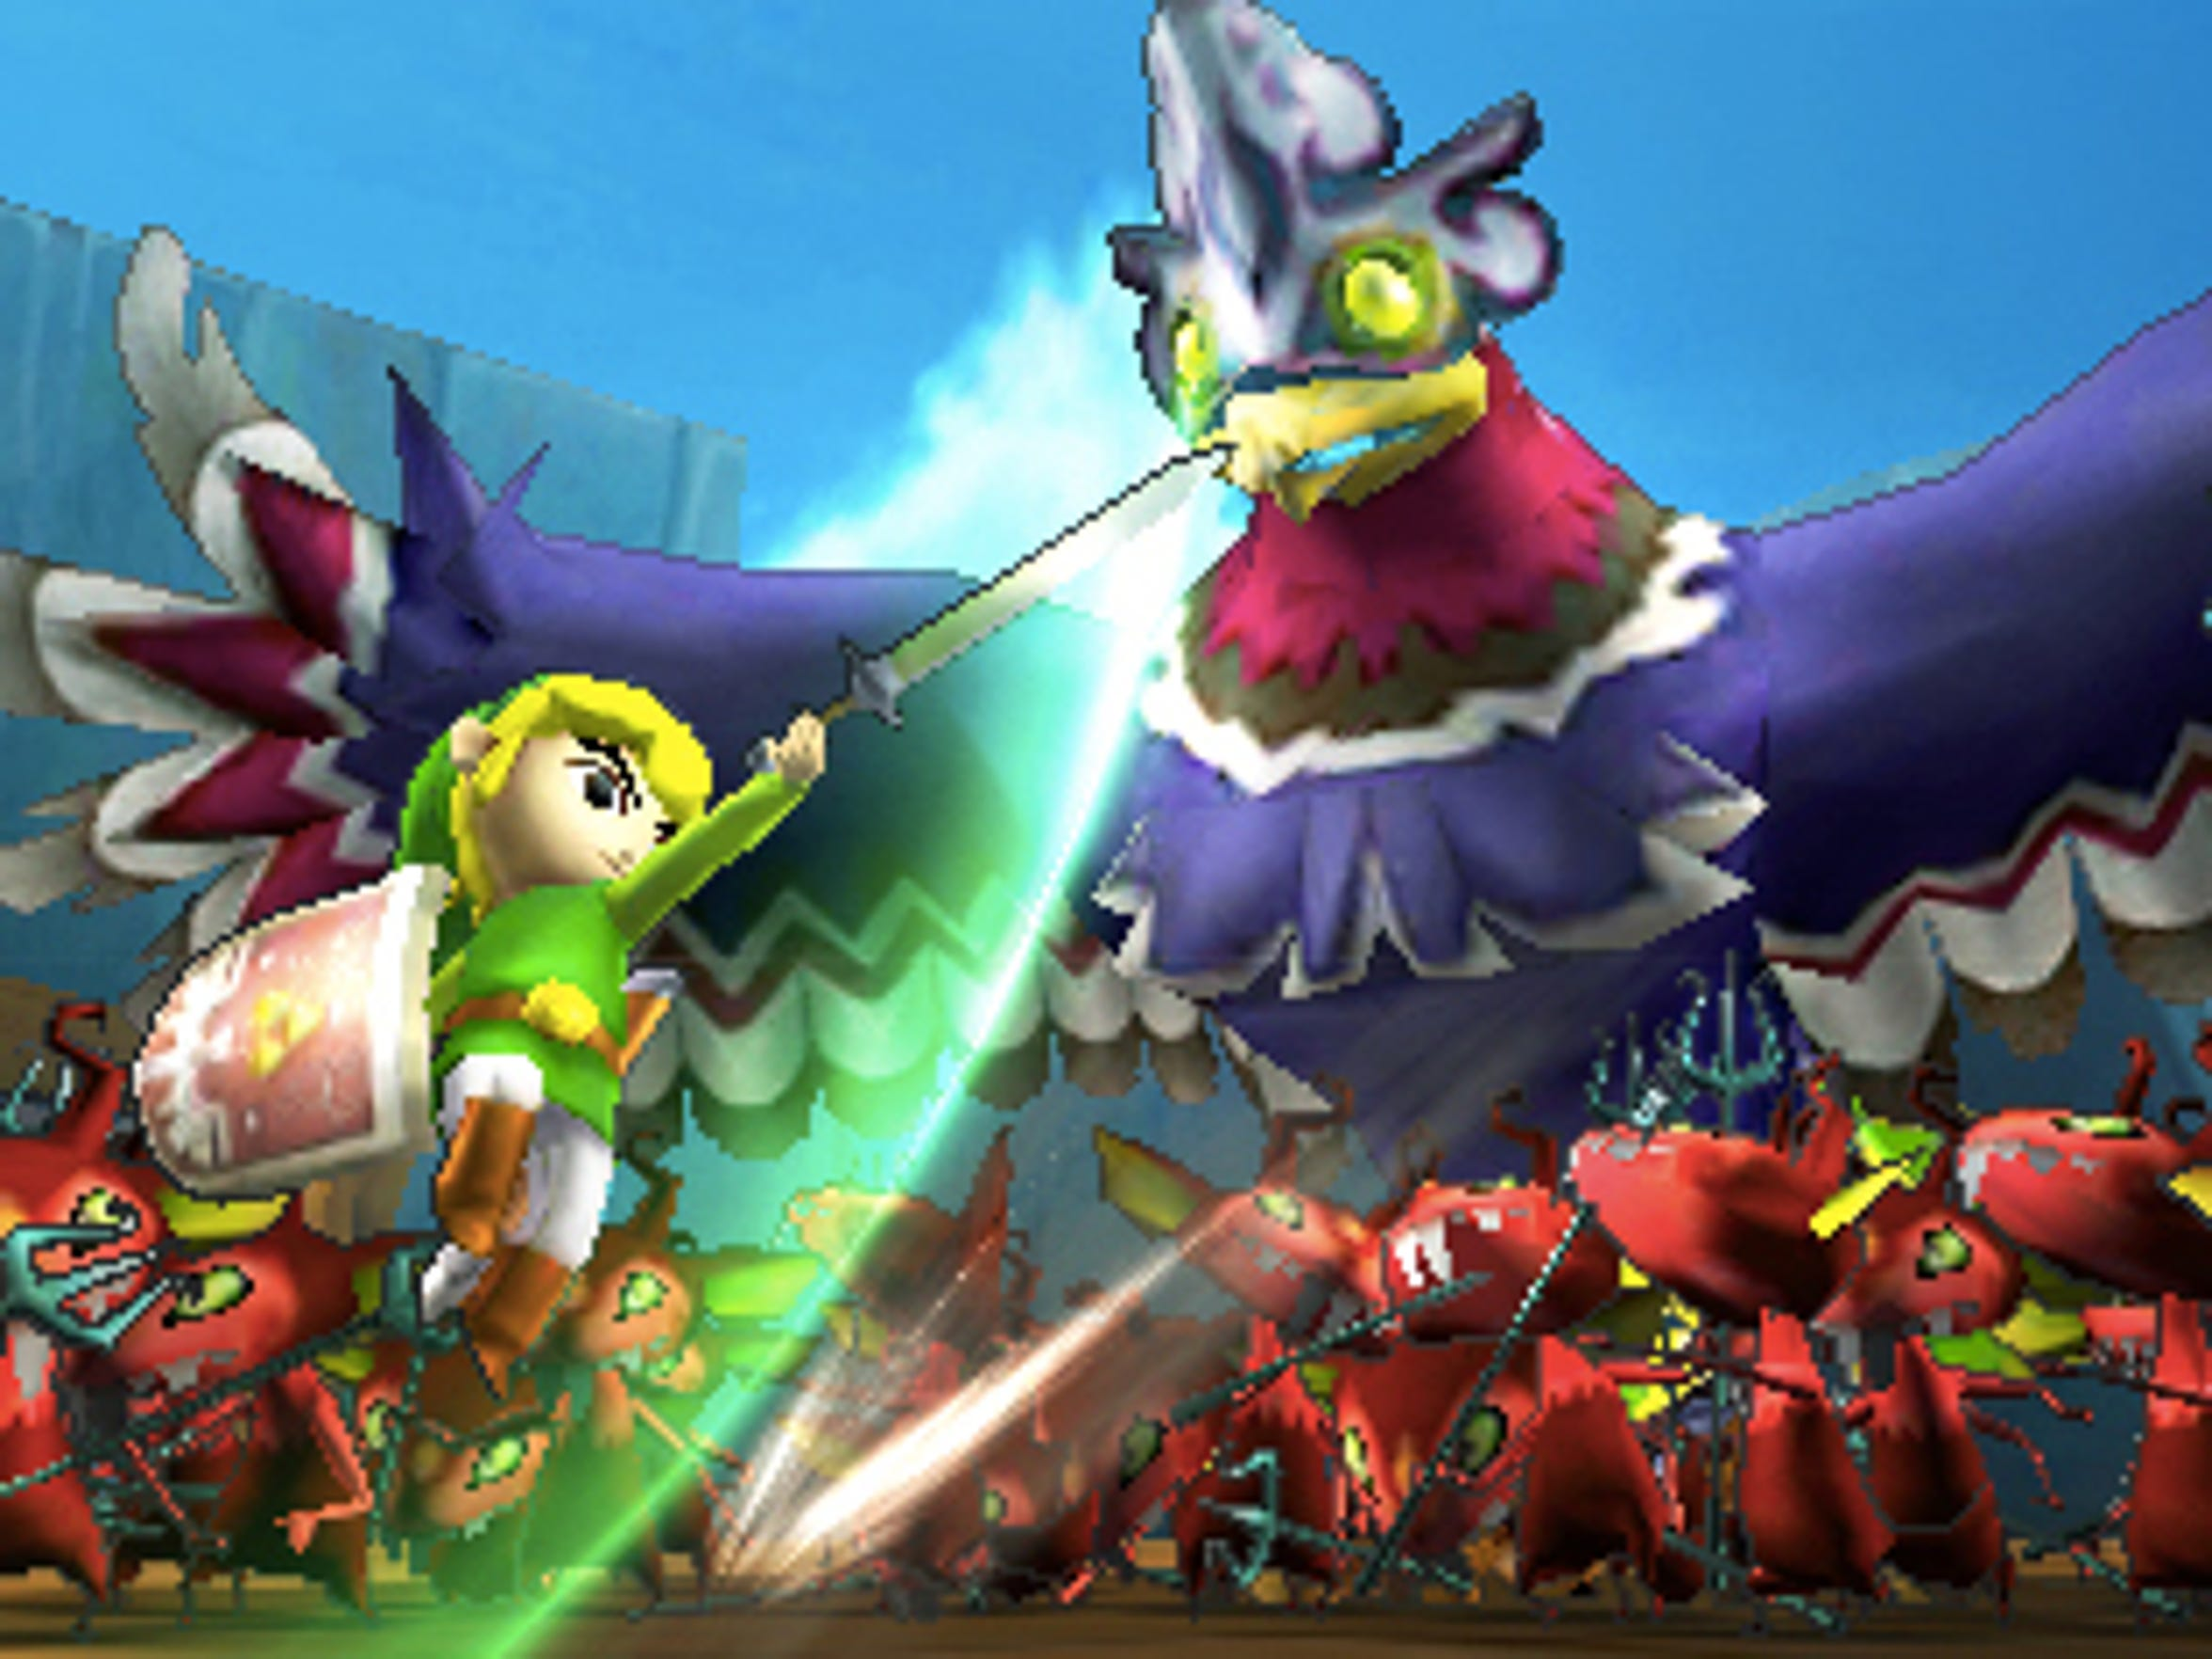 Toon Link enters the fray in Hyrule Warriors Legends